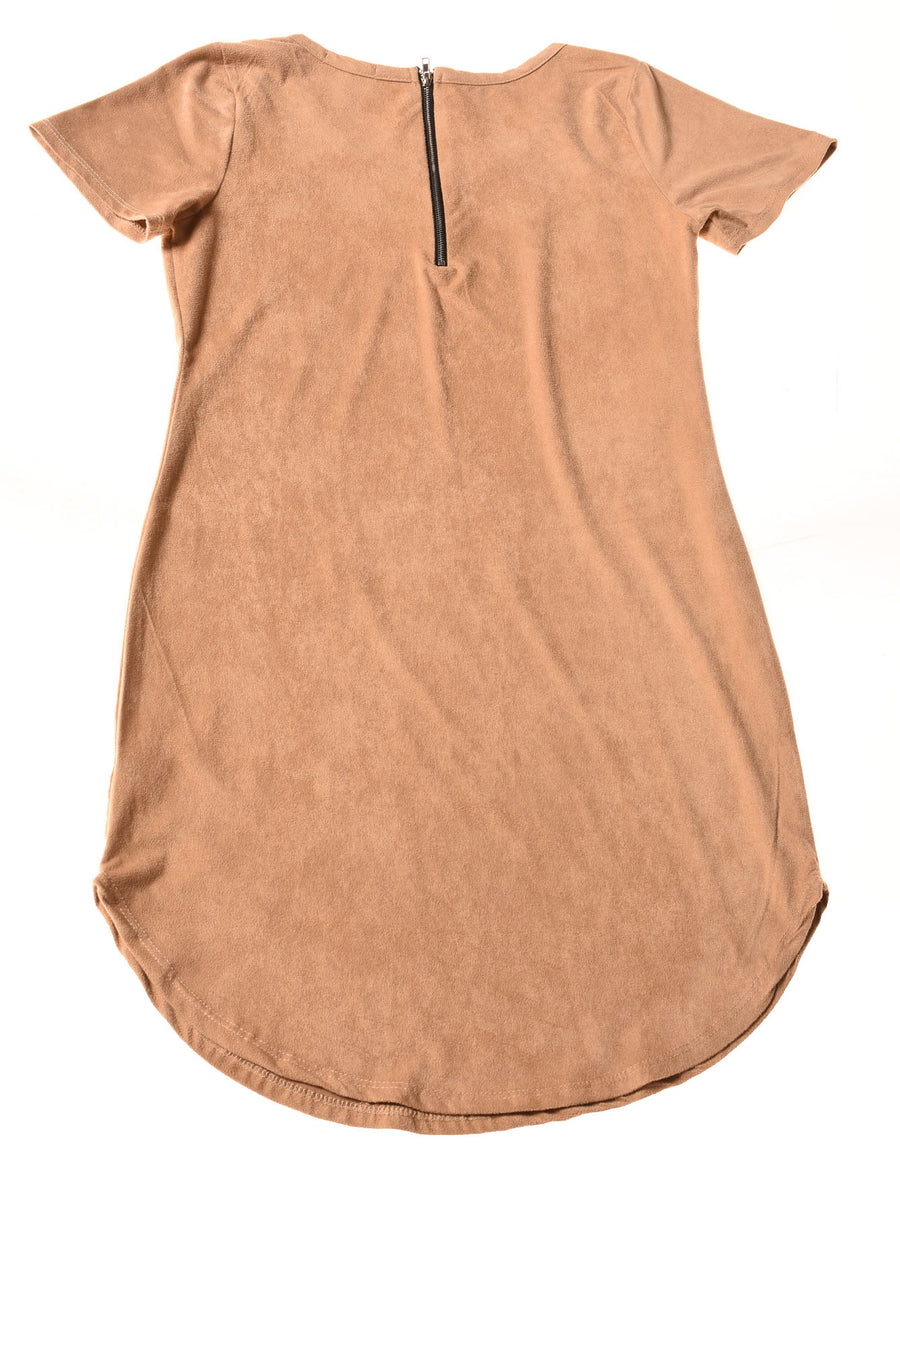 NEW Heart Hips Women's Dress Medium Camel